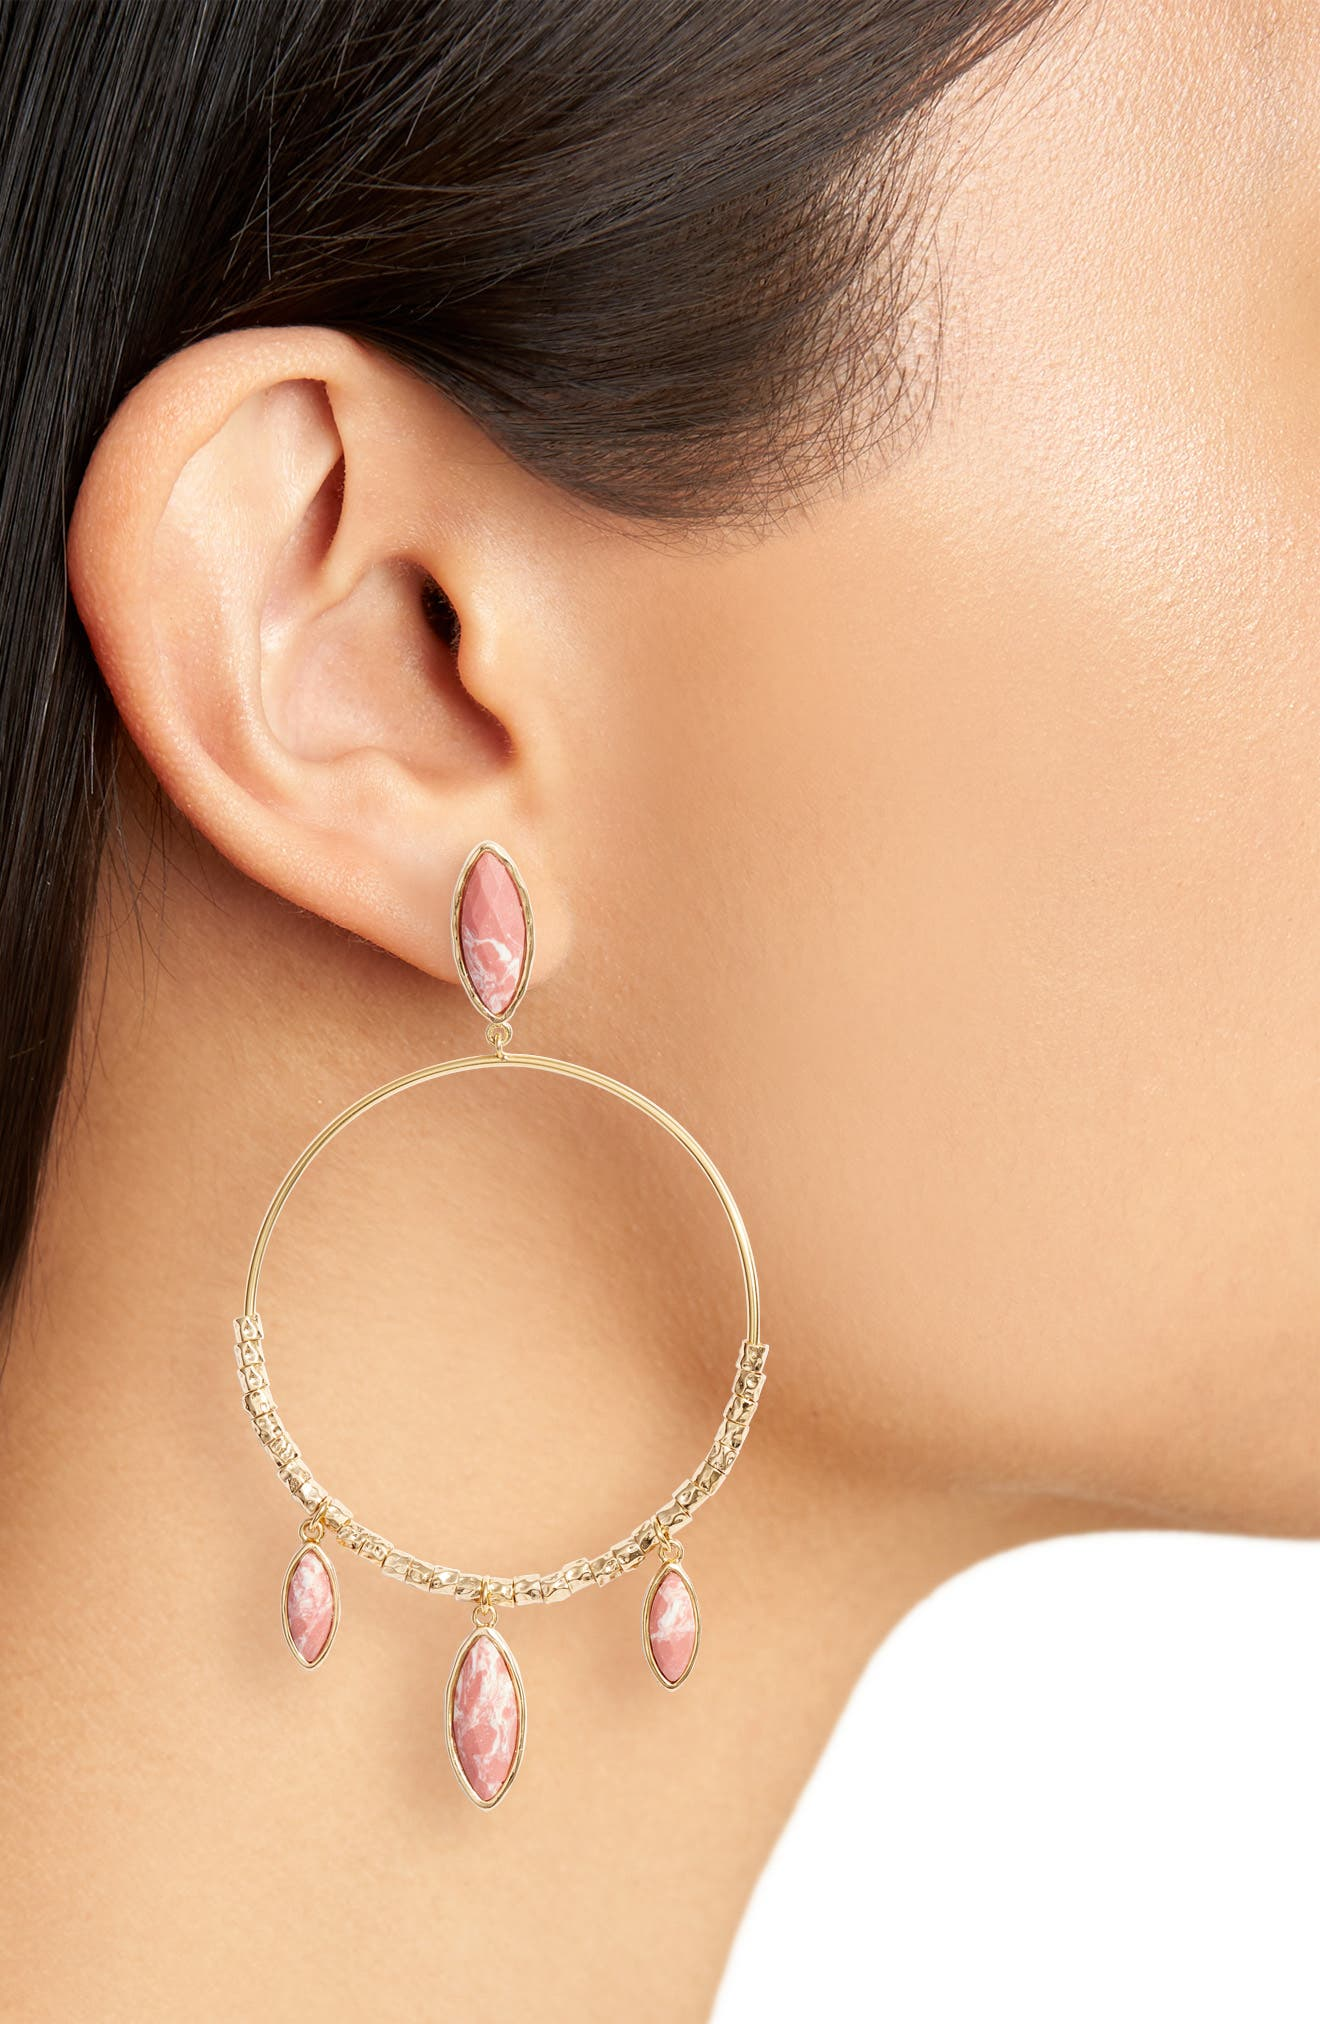 Palisades Drop Hoop Earrings,                             Alternate thumbnail 2, color,                             Rhodonite/ Gold